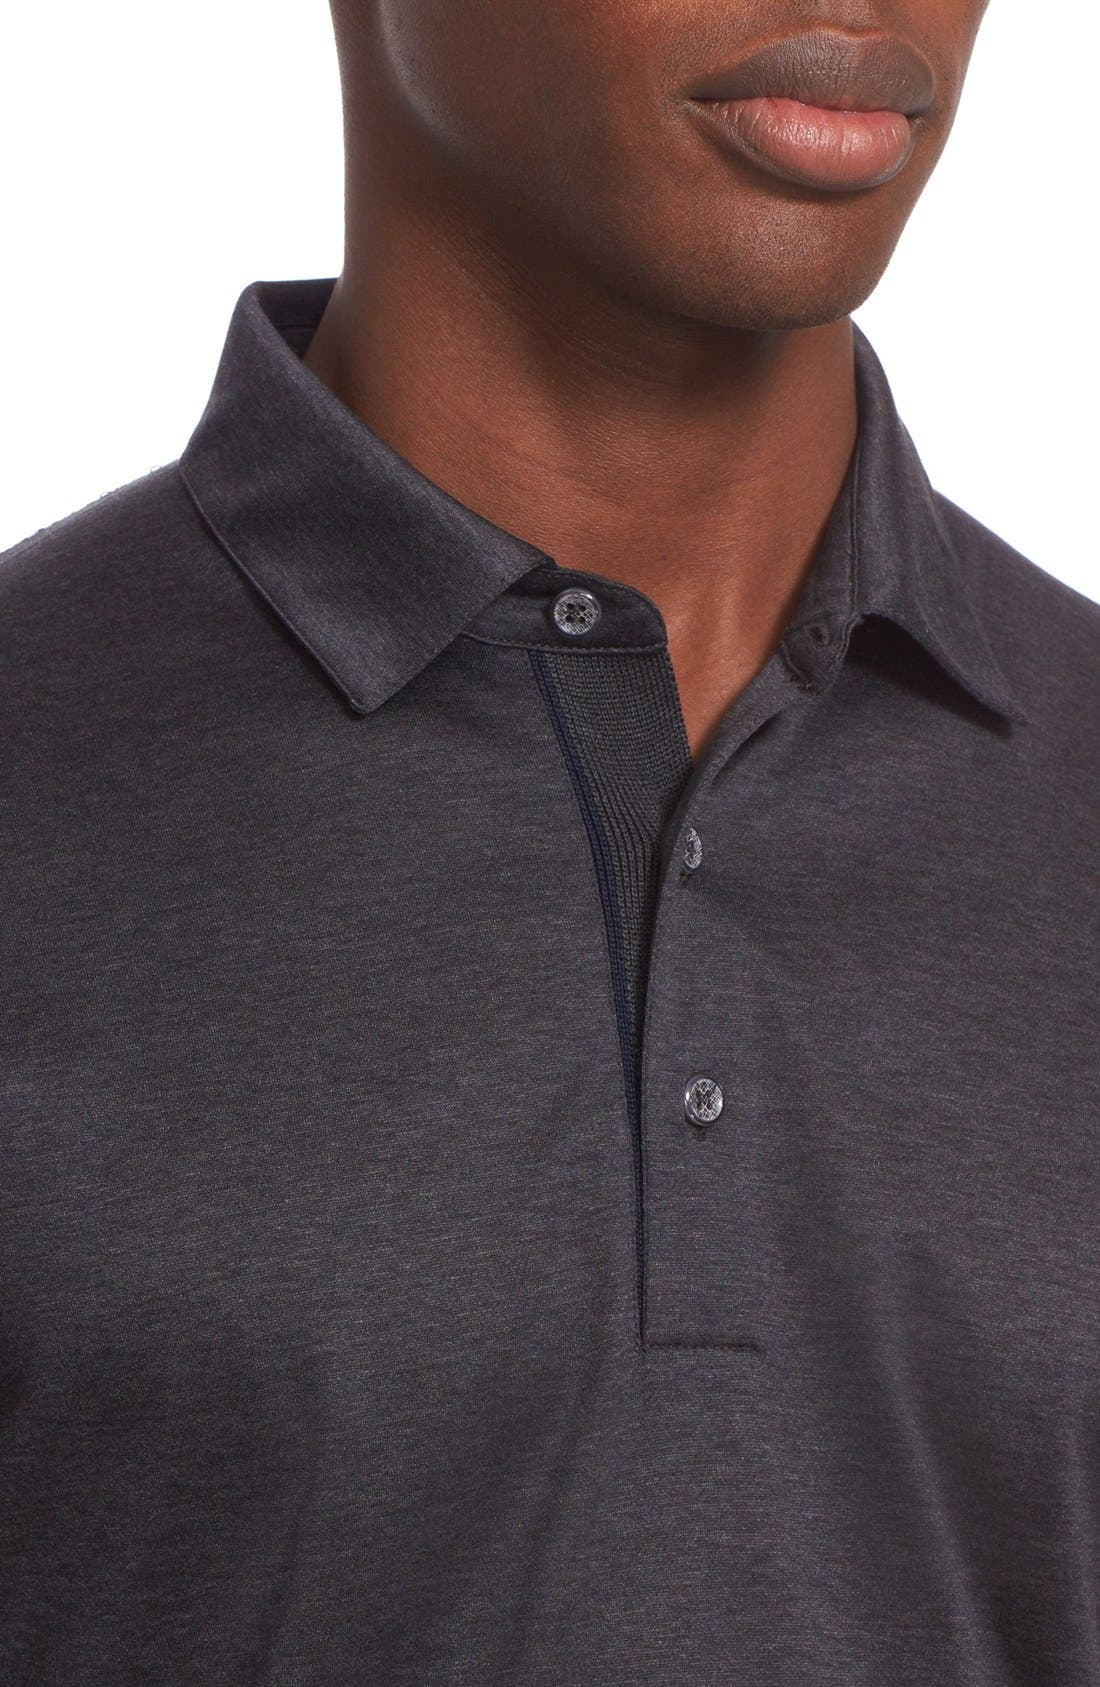 Heathered Mercerized Jersey Polo,                             Alternate thumbnail 4, color,                             Charcoal